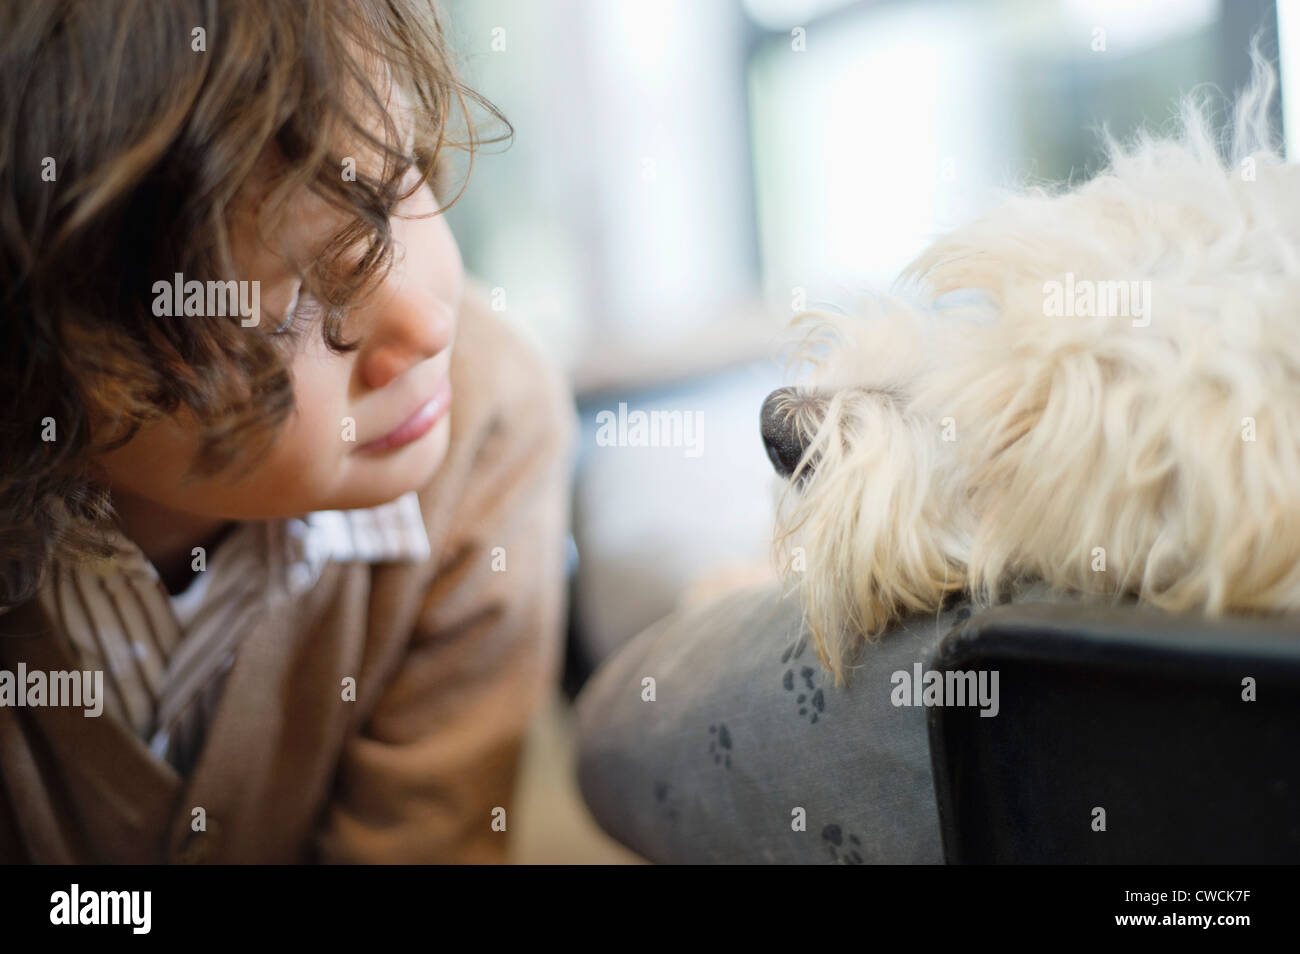 Close-up of a boy looking at a dog - Stock Image